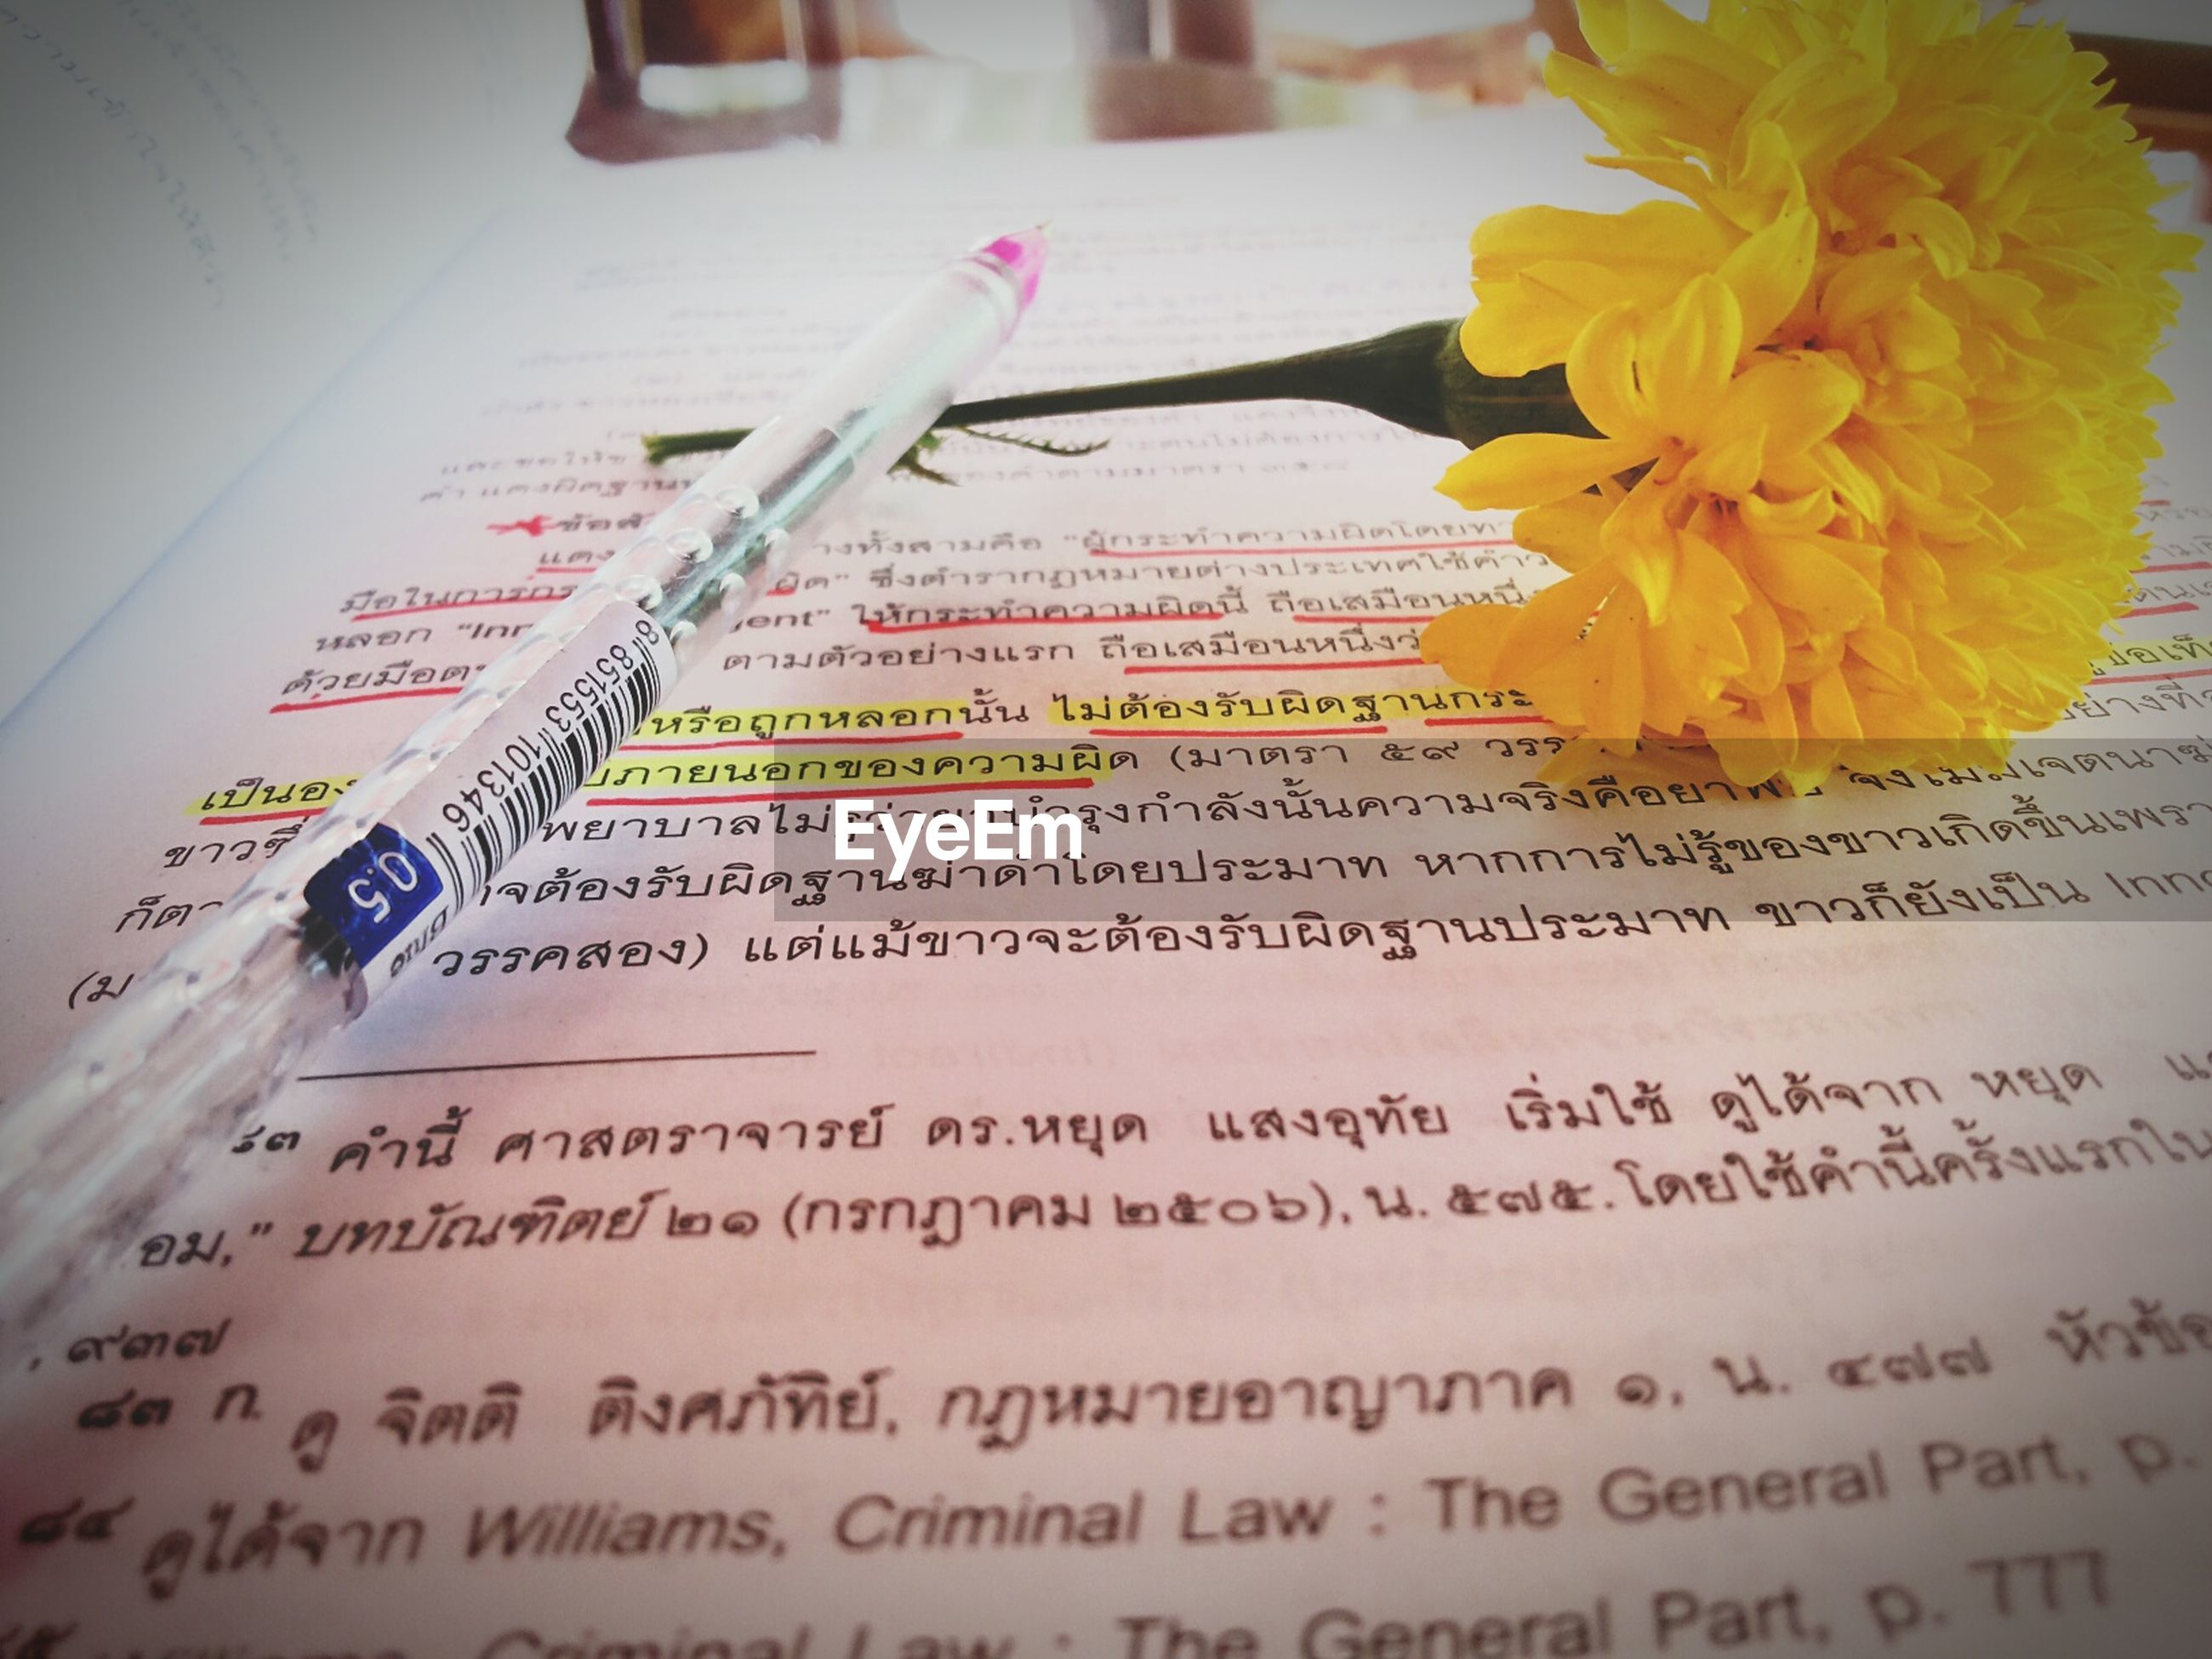 indoors, close-up, flower, book, paper, text, table, still life, yellow, education, freshness, communication, western script, no people, selective focus, high angle view, focus on foreground, cropped, pen, open